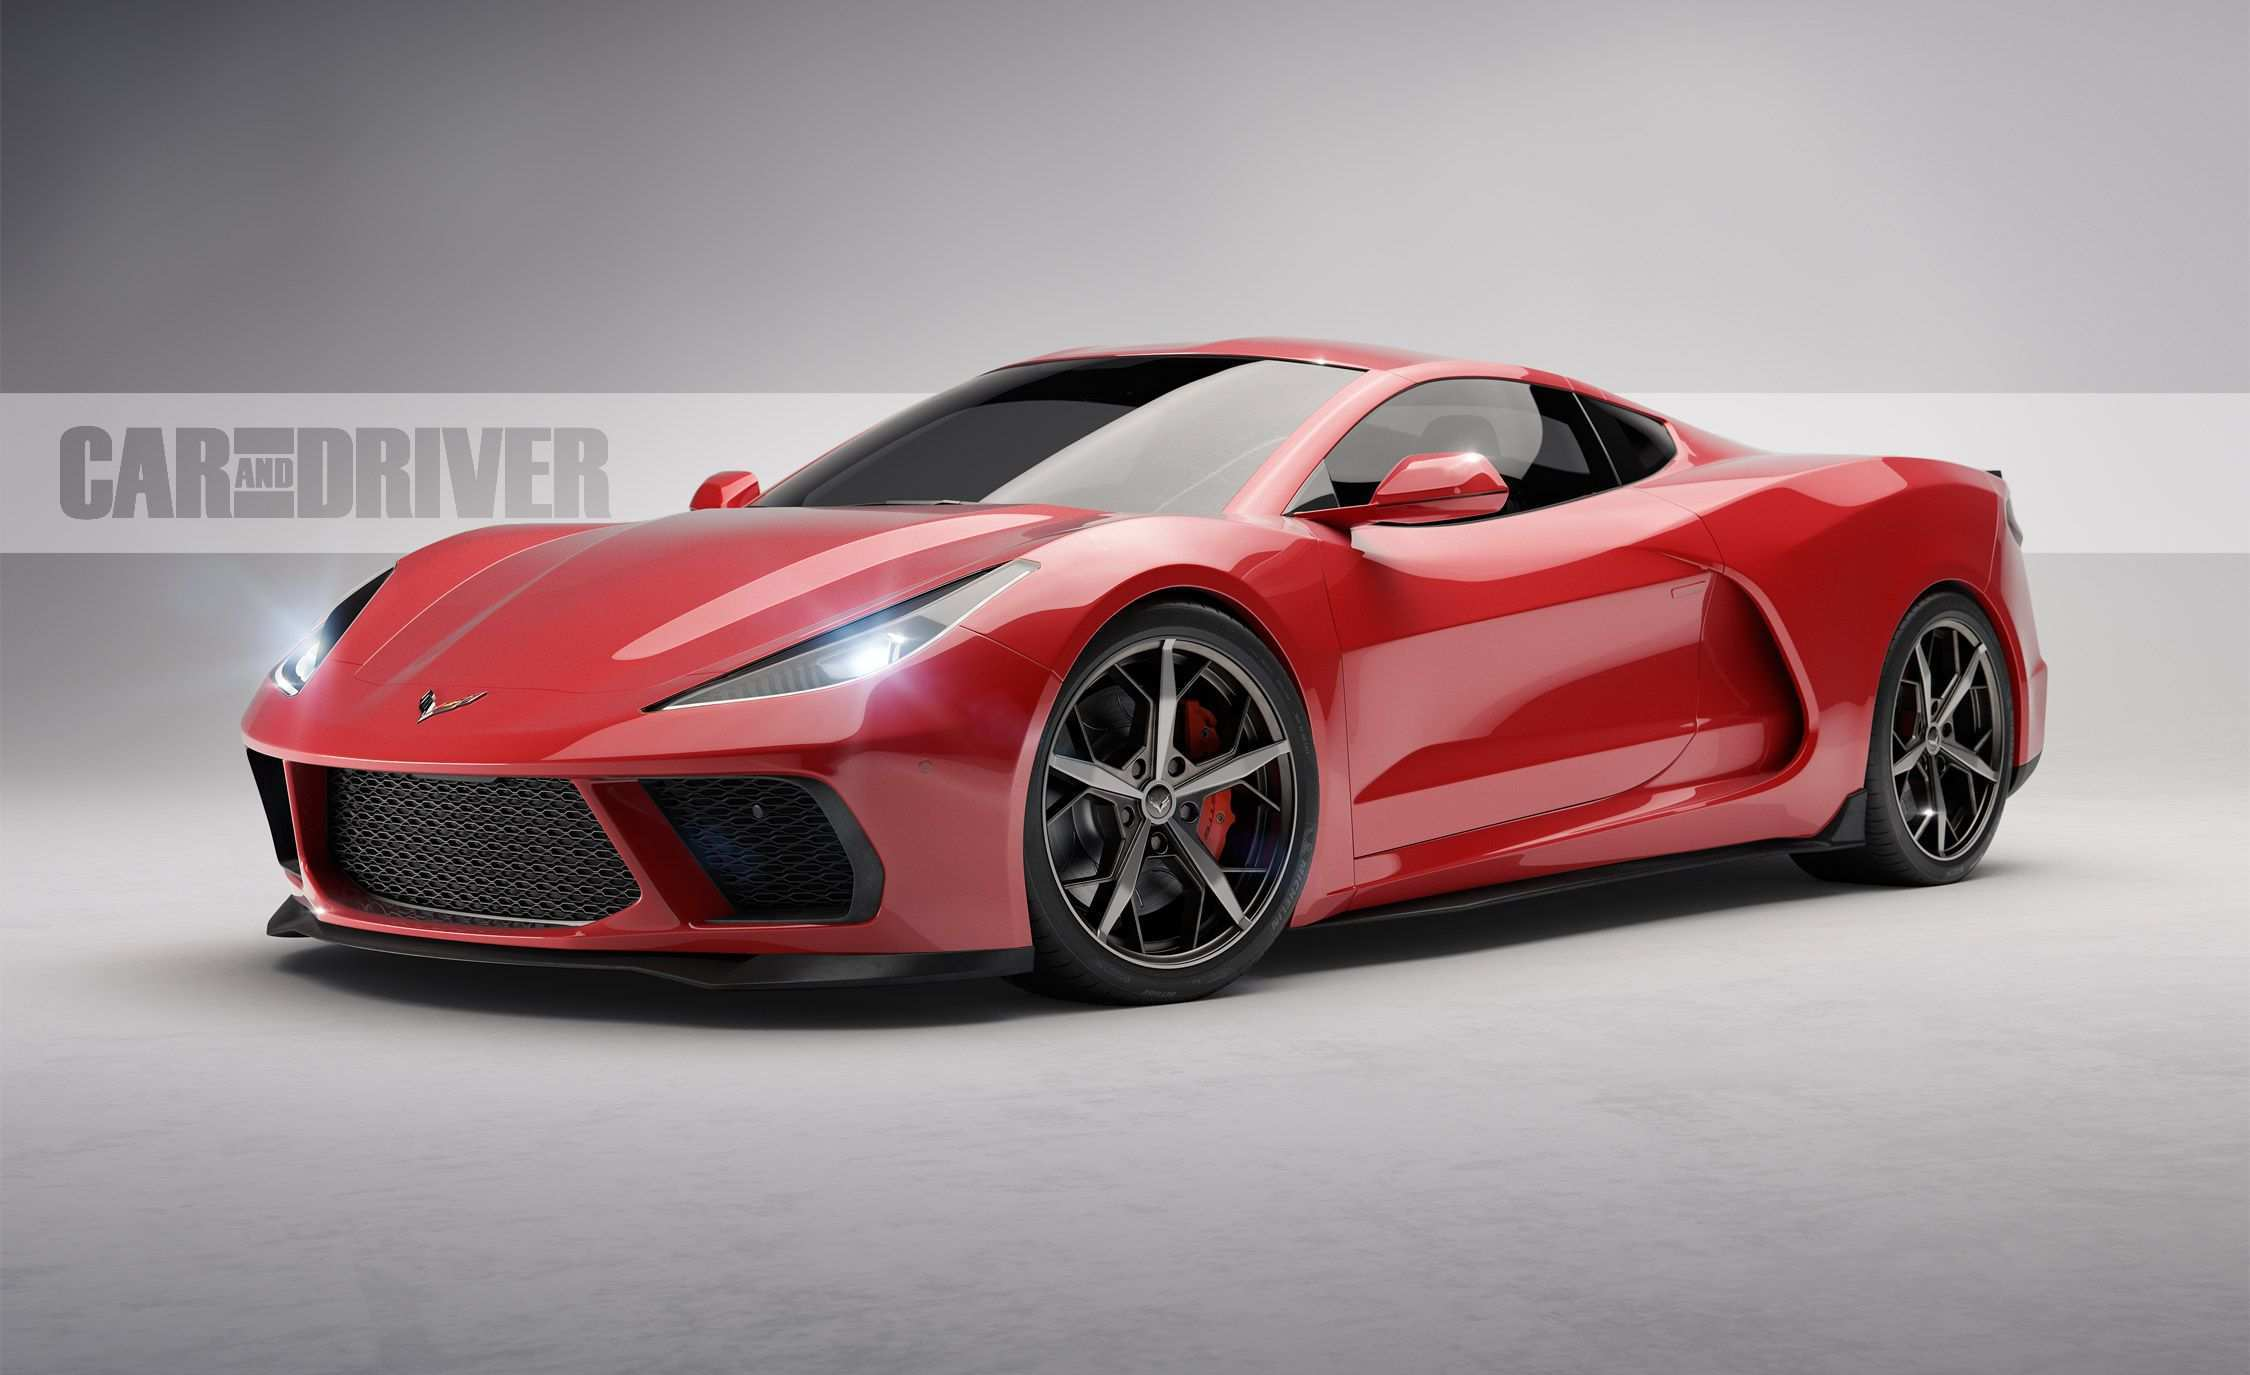 98 All New 2020 Corvette Stingray Exterior for 2020 Corvette Stingray